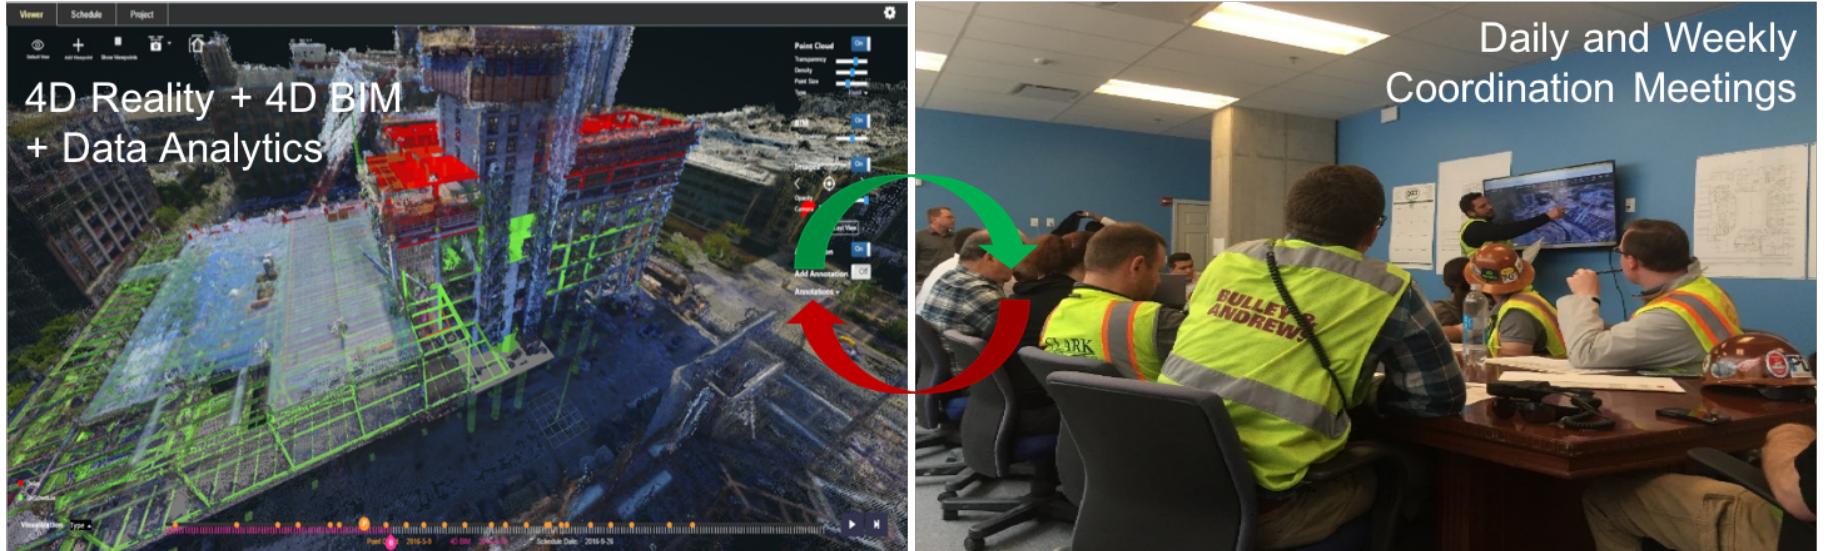 Use Images for Proactive Project Controls on Construction Sites